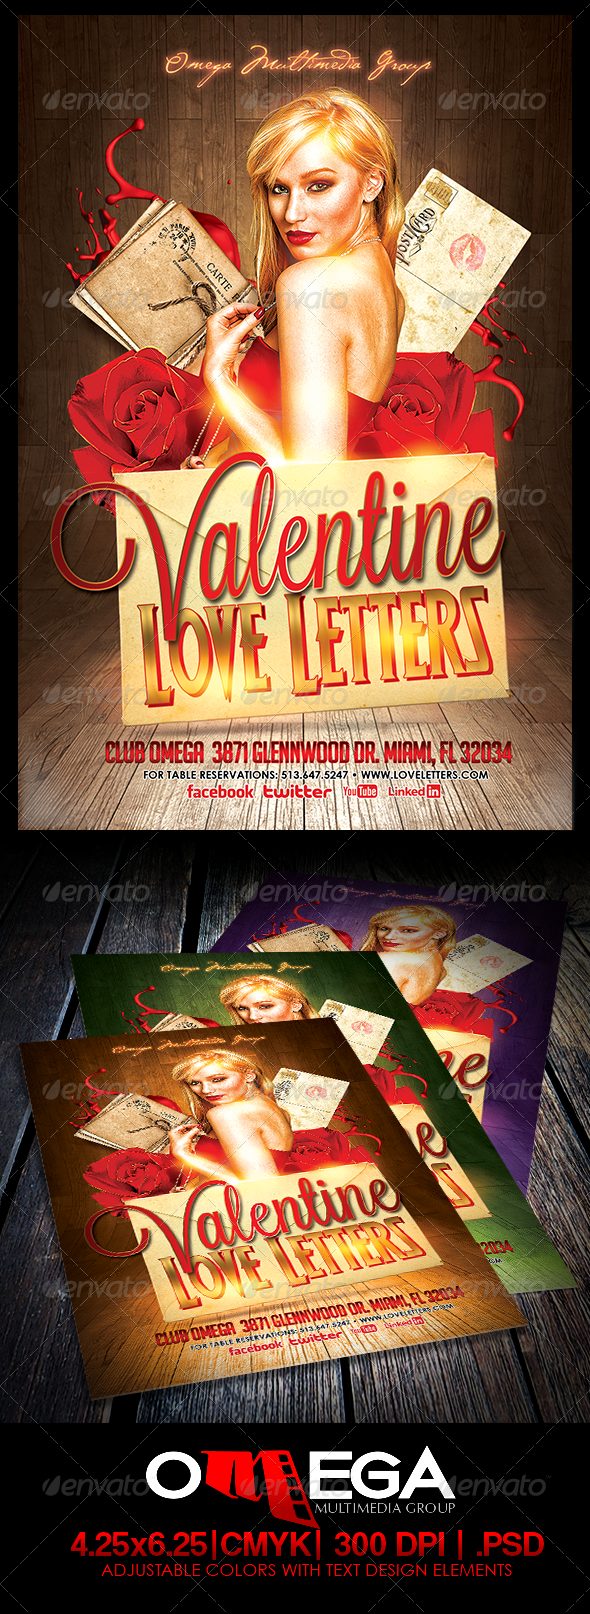 Valentine Love Letters - Events Flyers